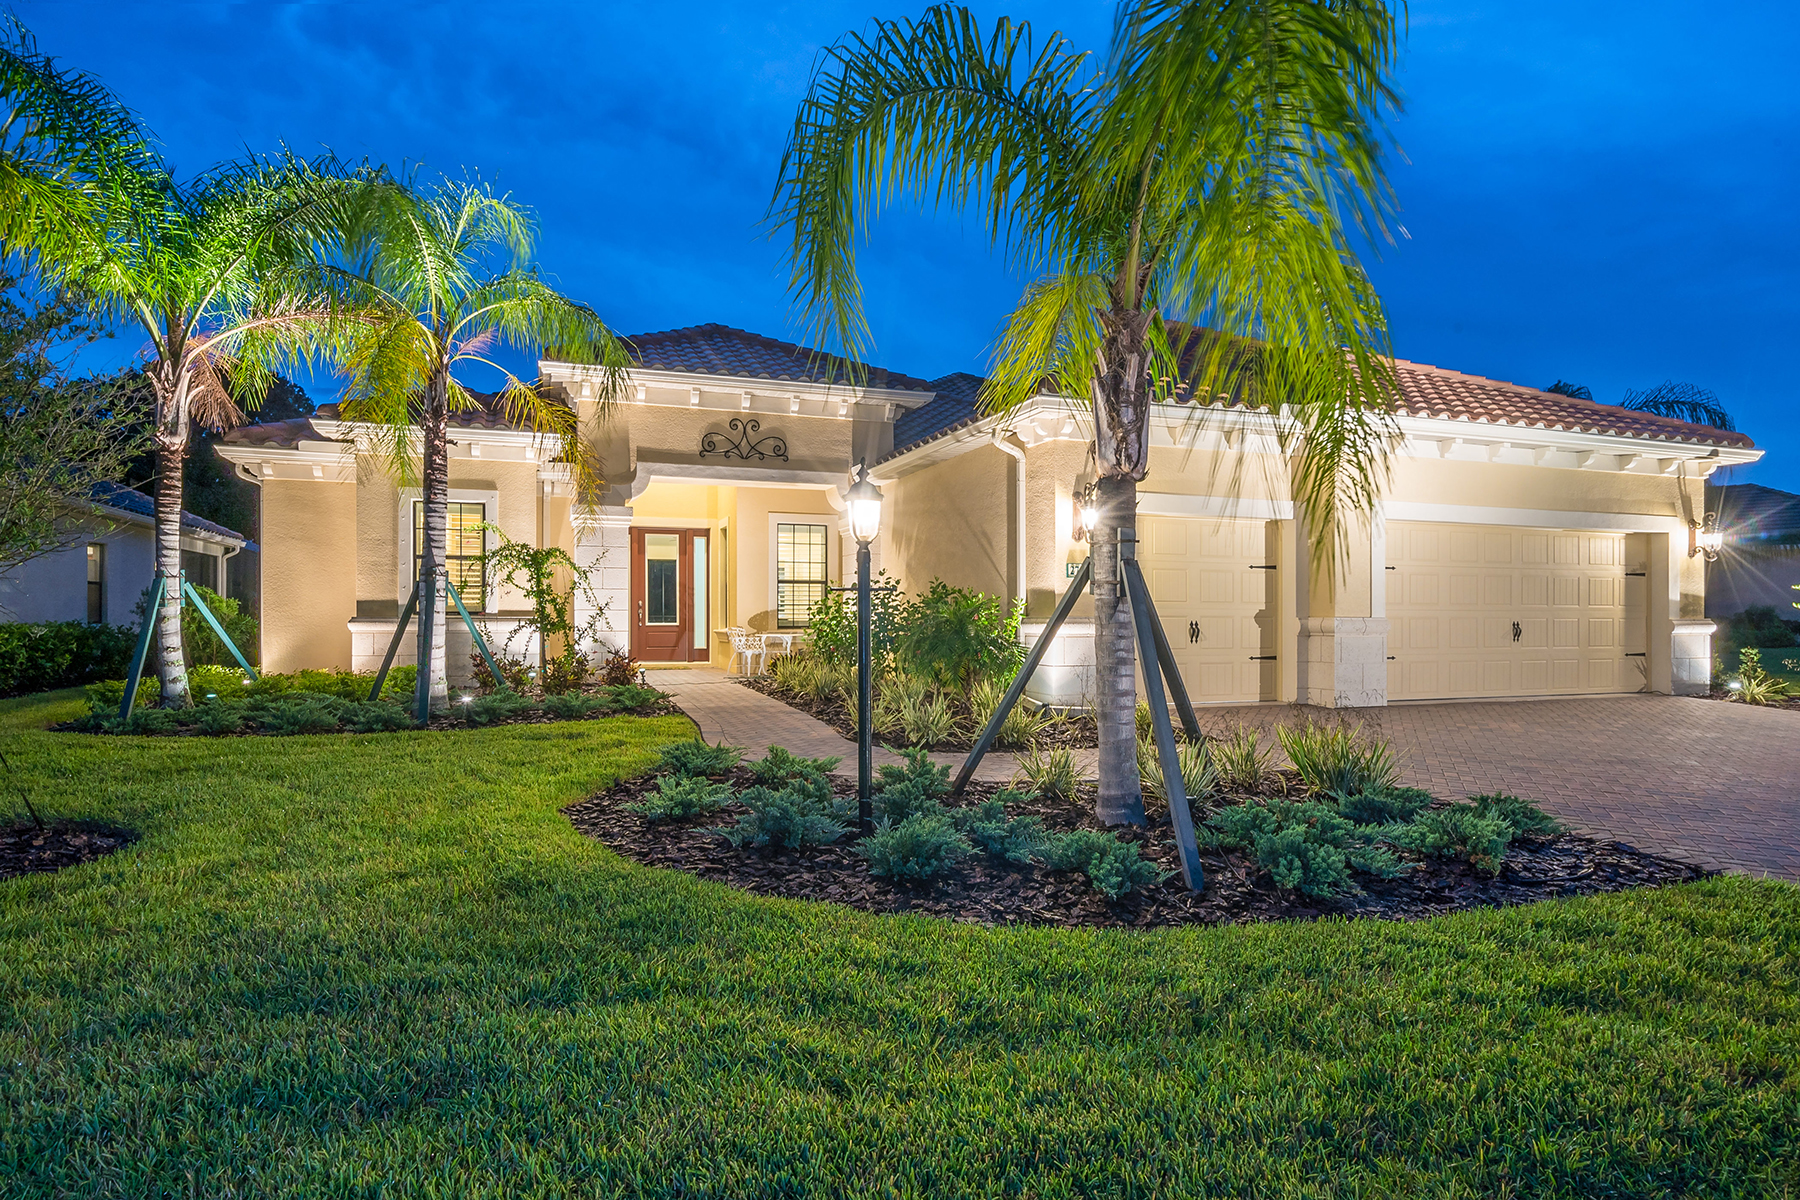 Single Family Home for Sale at BOCA ROYALE 27441 Hole In One Pl Englewood, Florida, 34223 United States